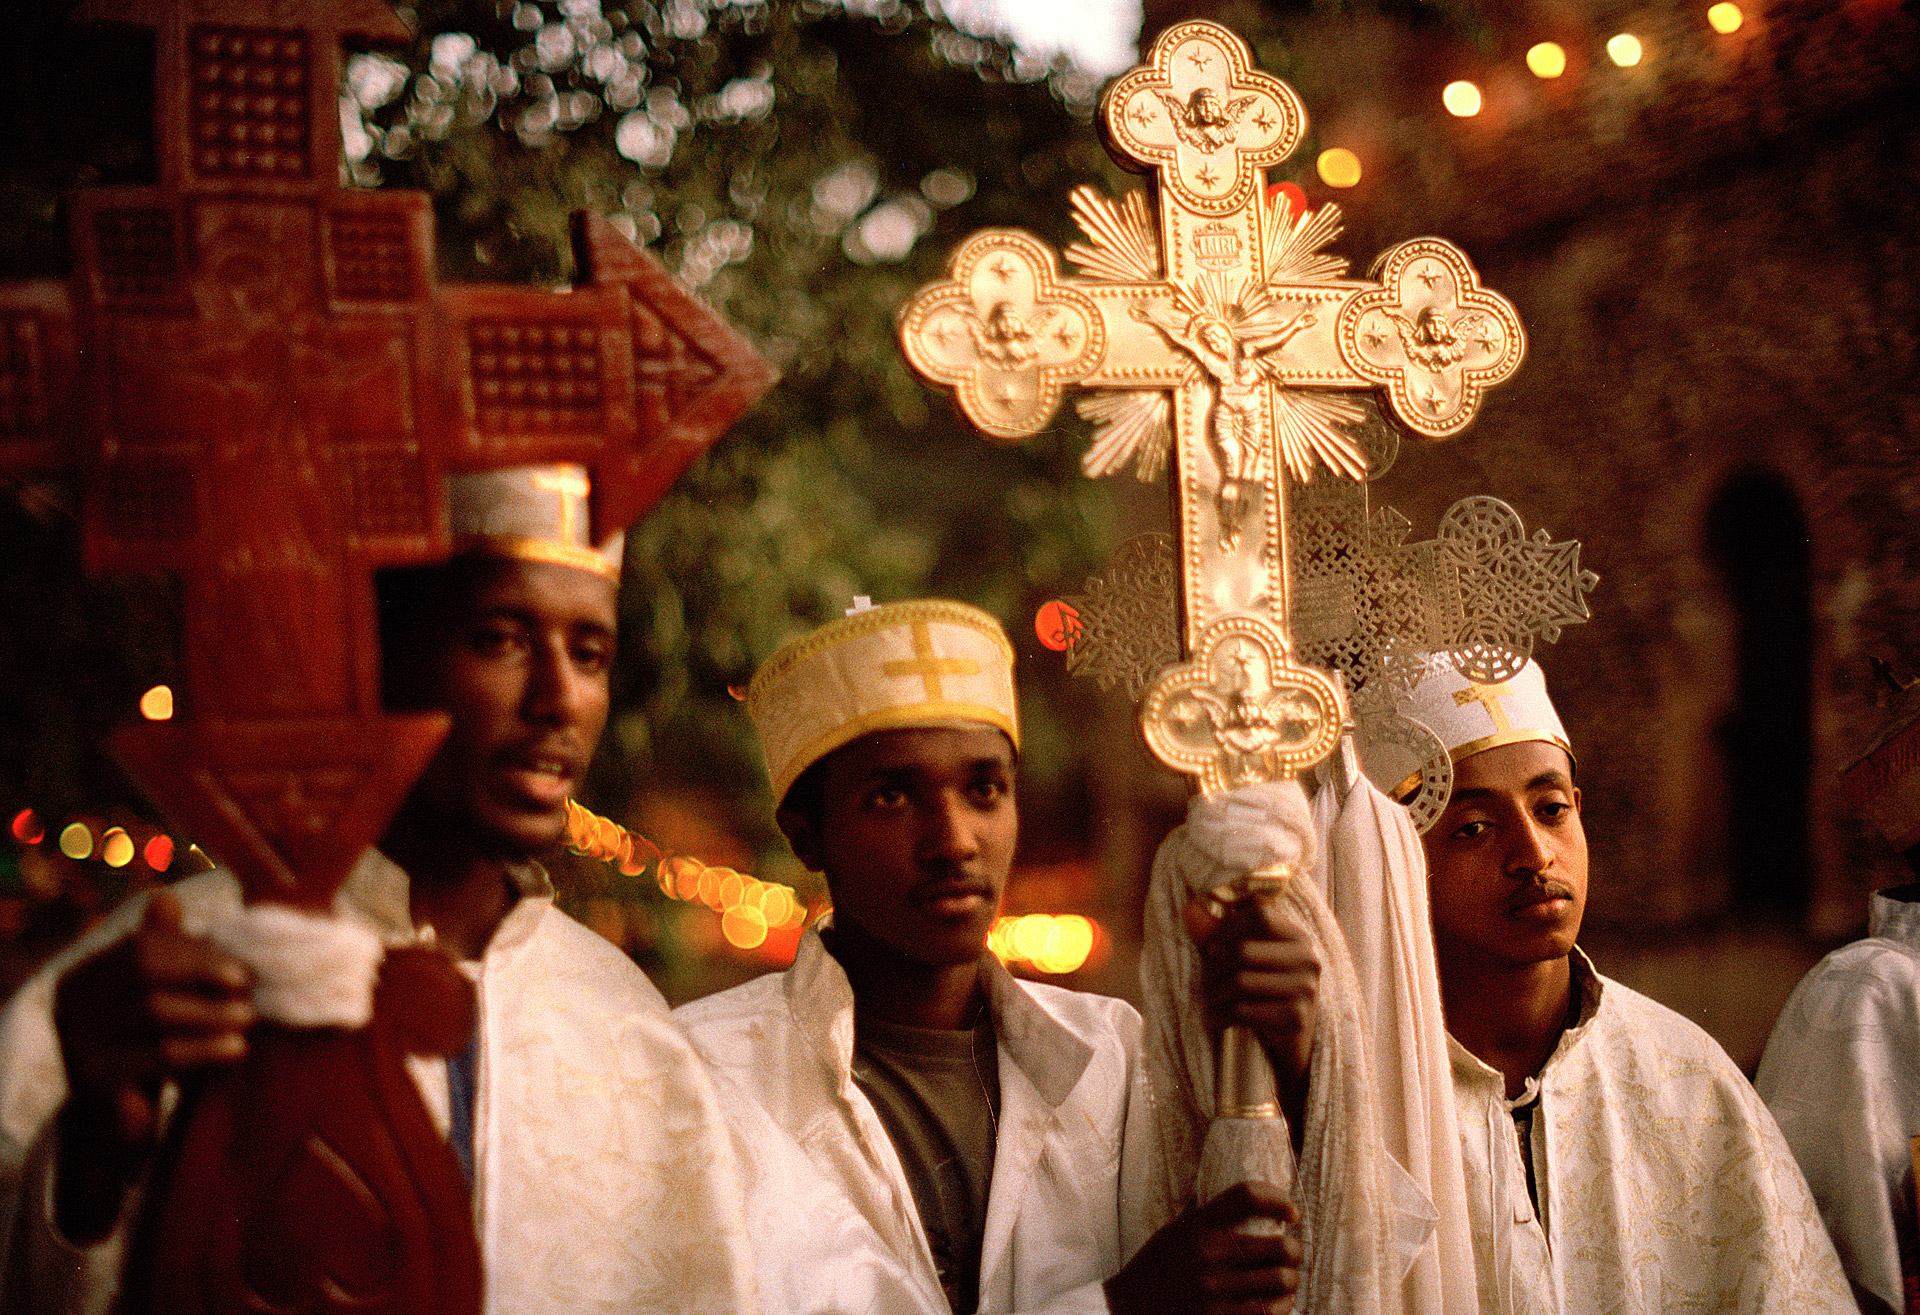 Young priests at Timkat religious Festival in Gondar Ethiopia